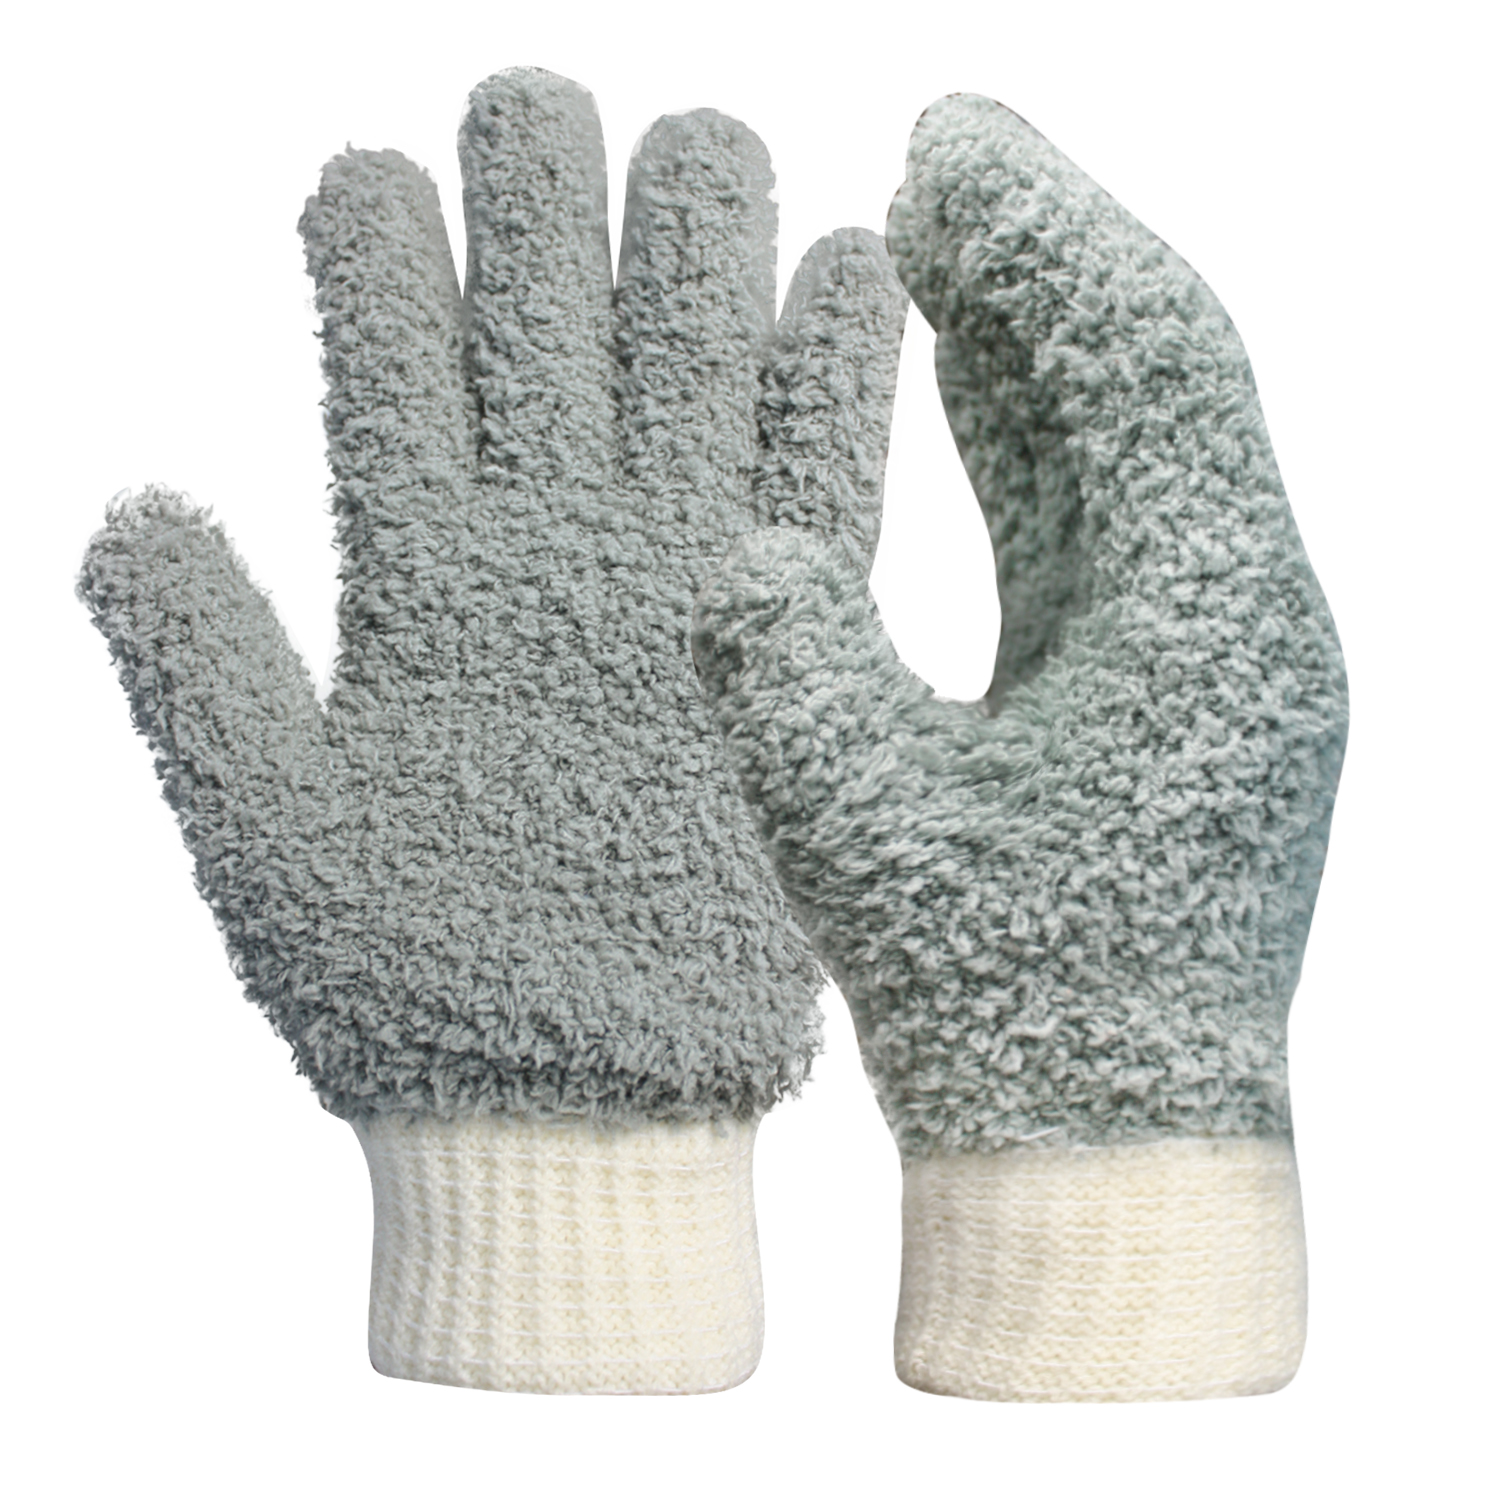 Microfiber Dusting Cleaning Gloves with Cotton Cuff/MDC-001-G